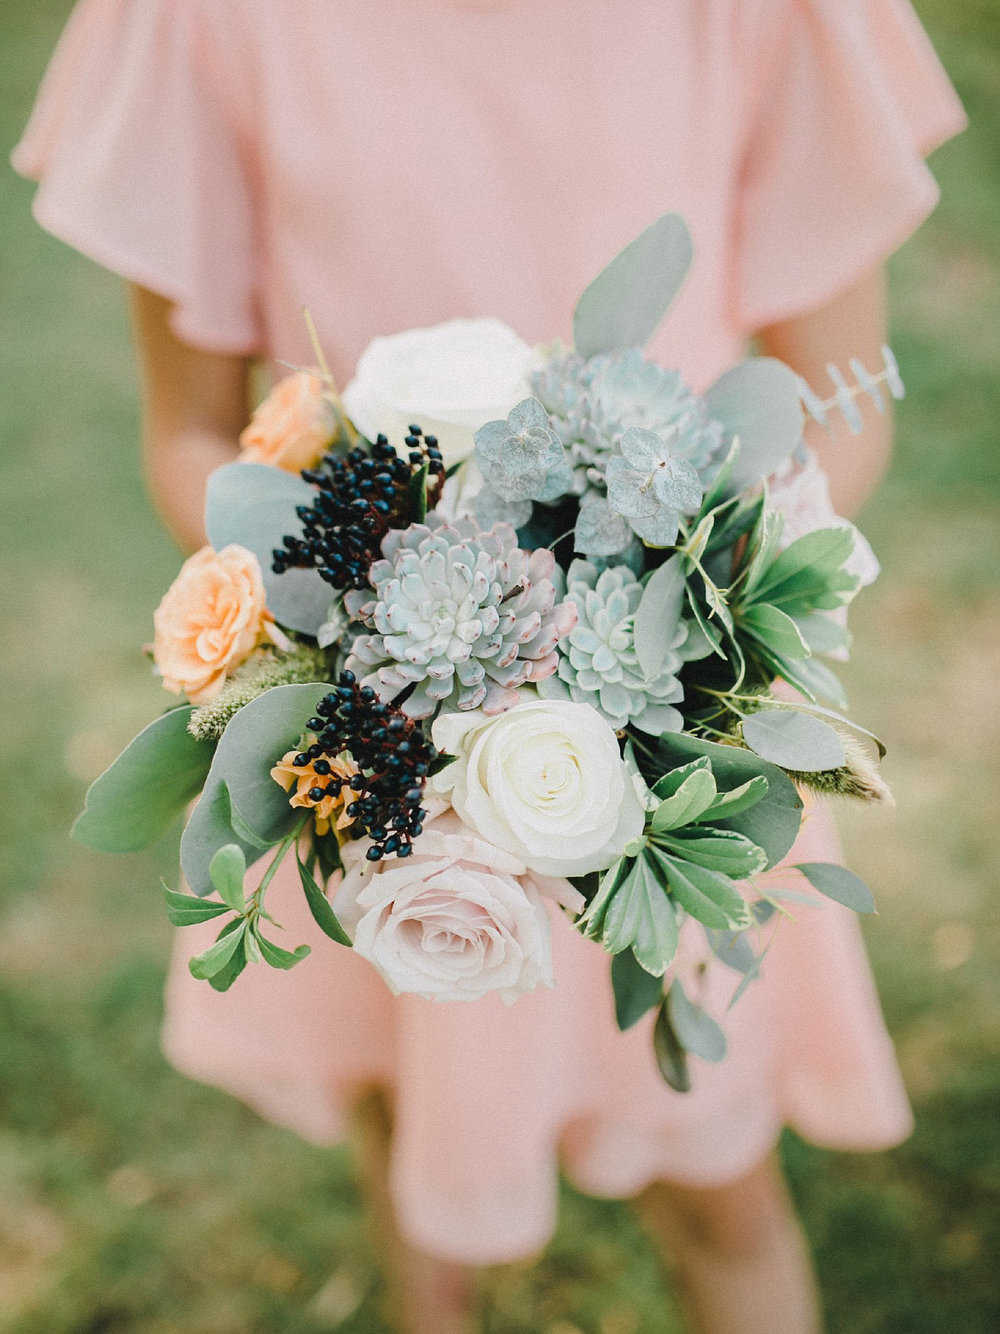 Navy, apricot, white, and green bridesmaid wedding bouquet